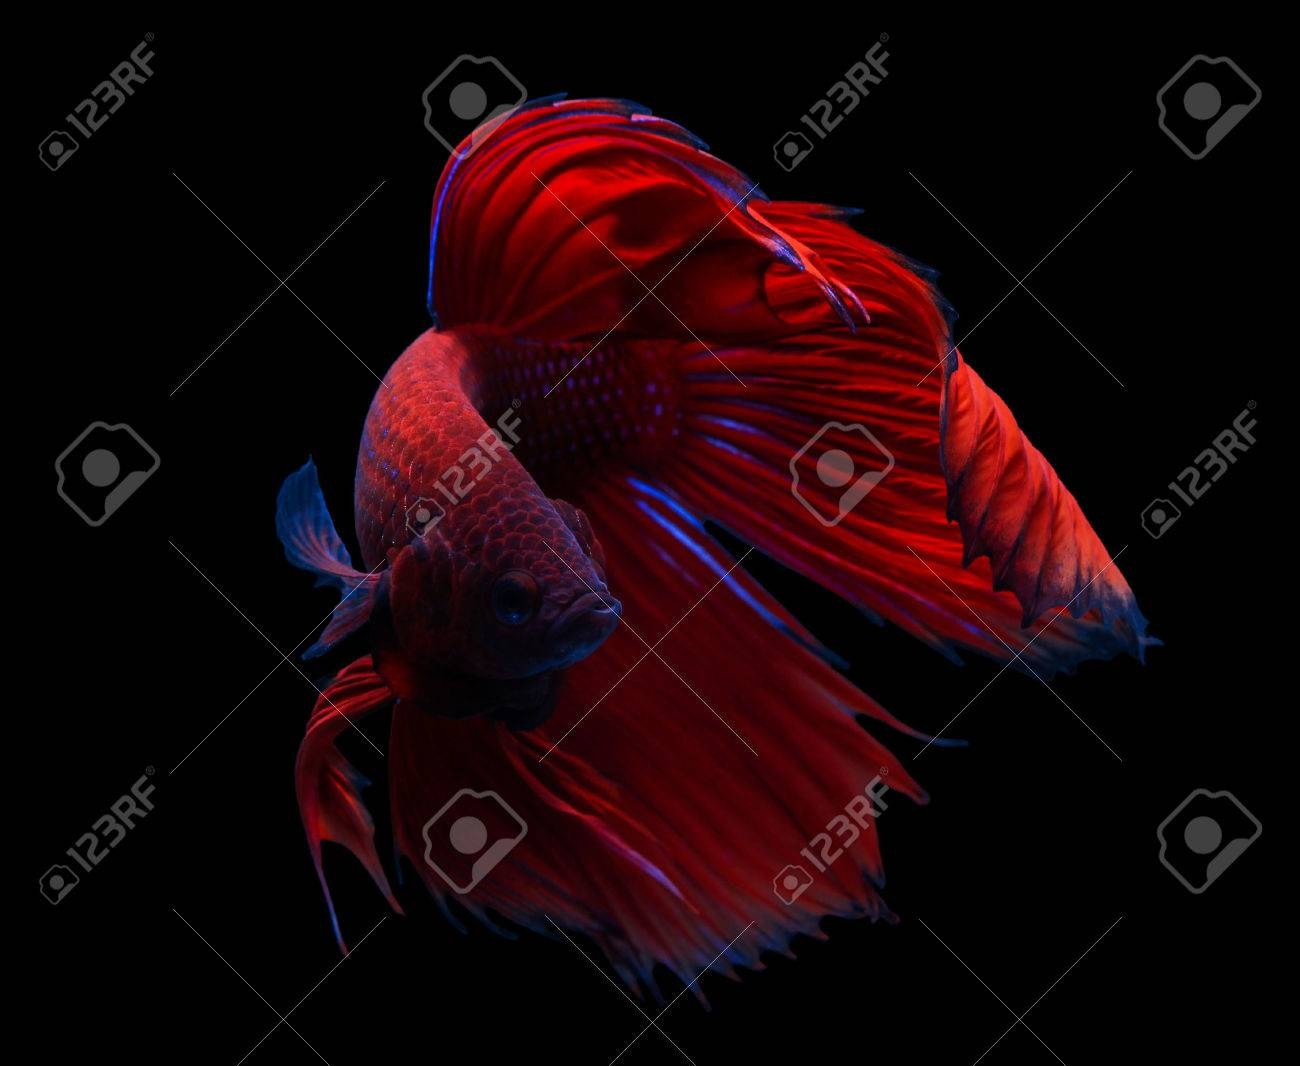 siamese fighting fish isolated on black background. Stock Photo - 26341370